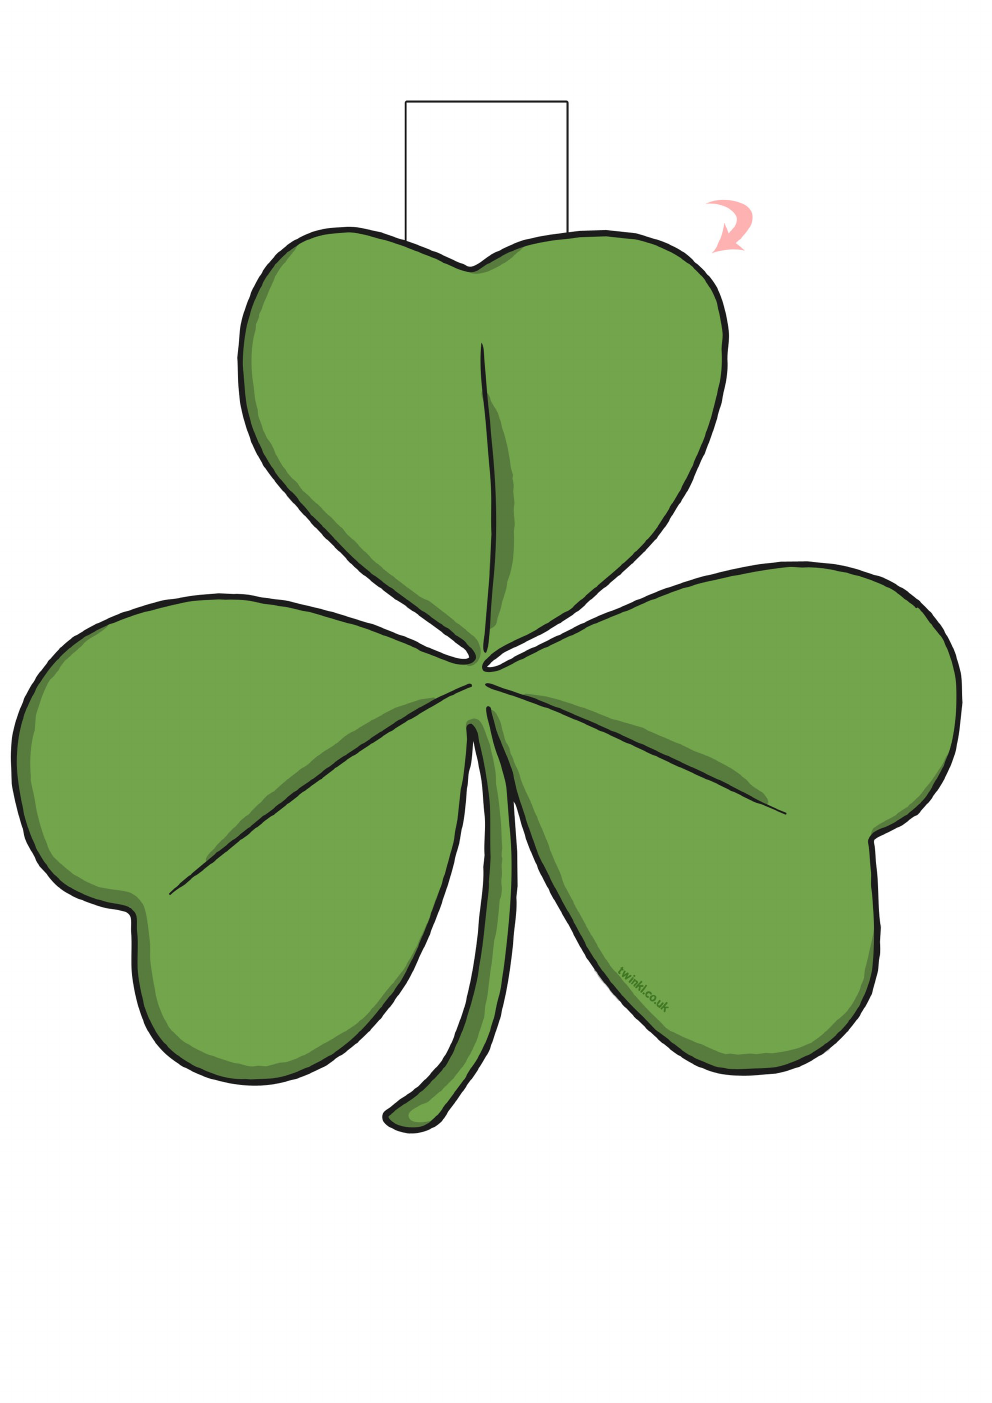 St Patricks Day Crafts for Kids Toddlers Free Printable